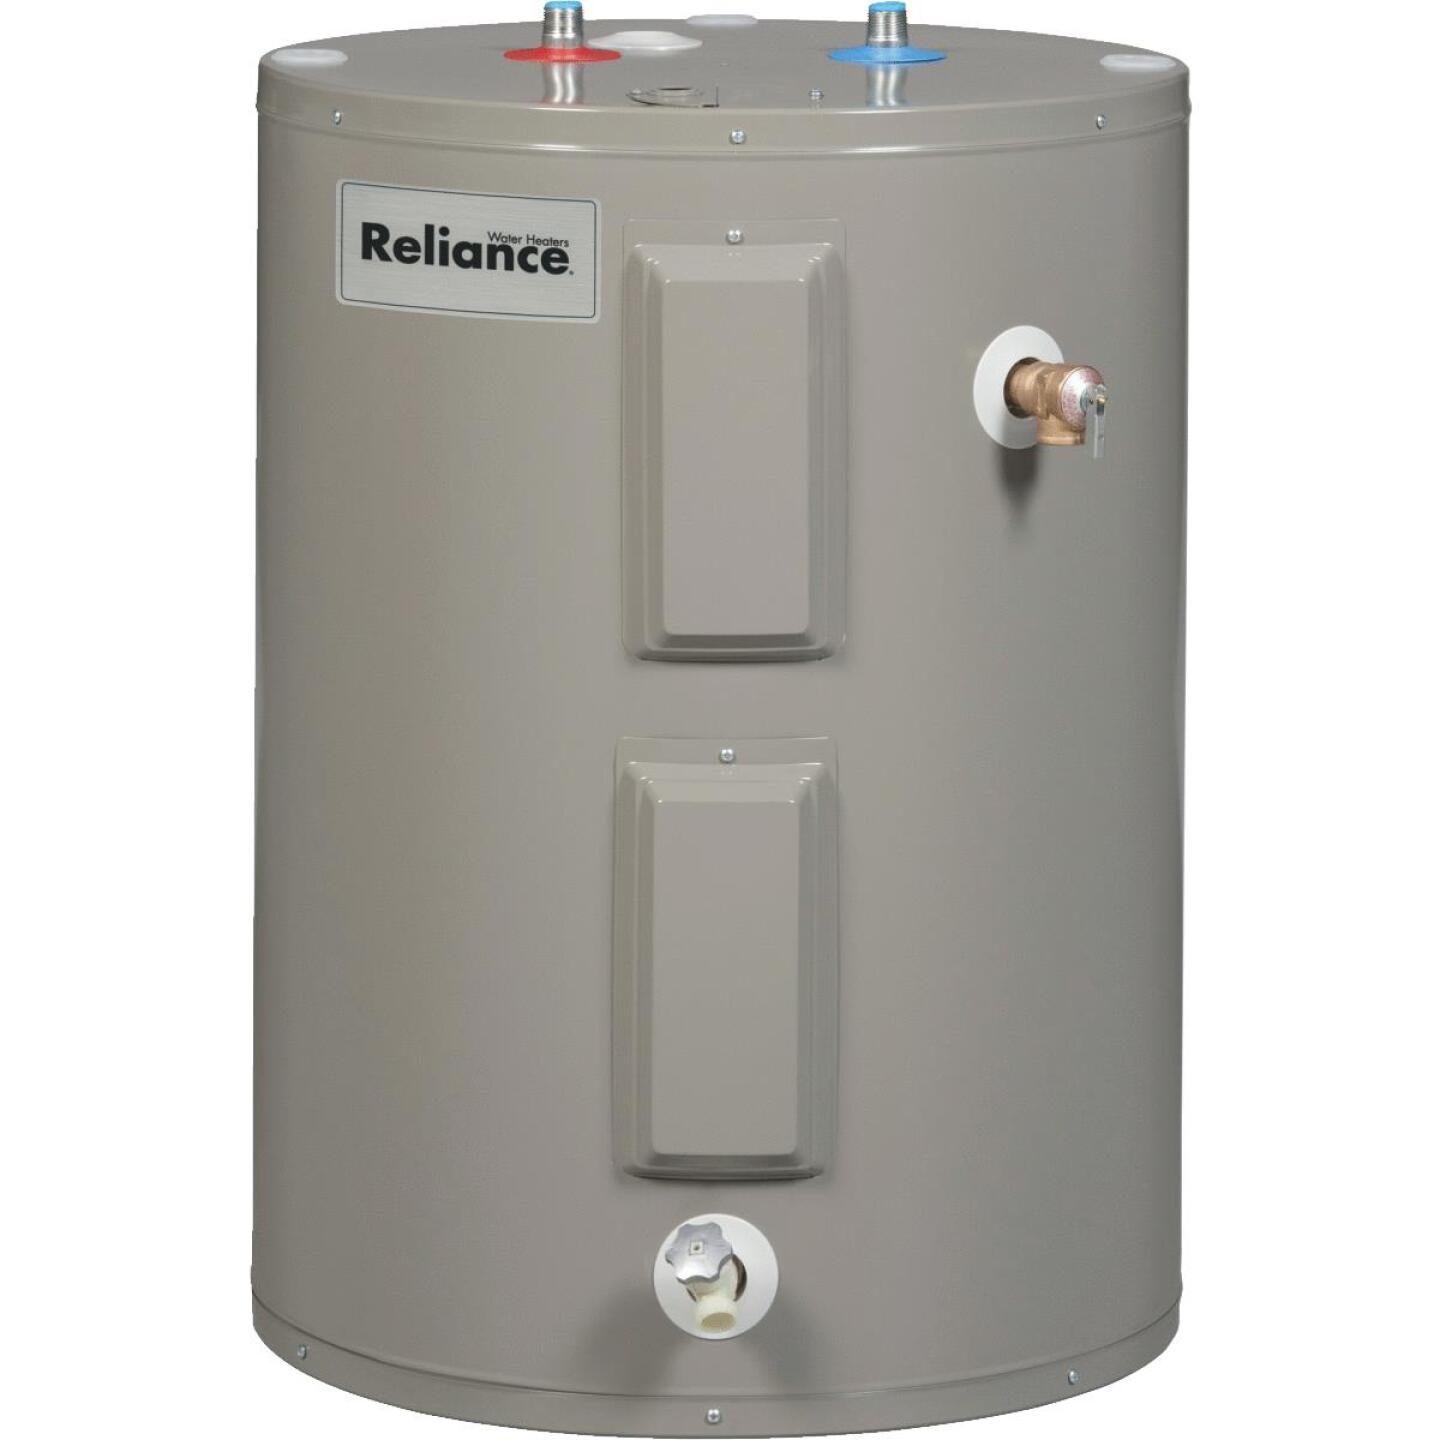 Reliance 30 Gal. Short 6yr 4500/4500W Elements Electric Water Heater Image 1